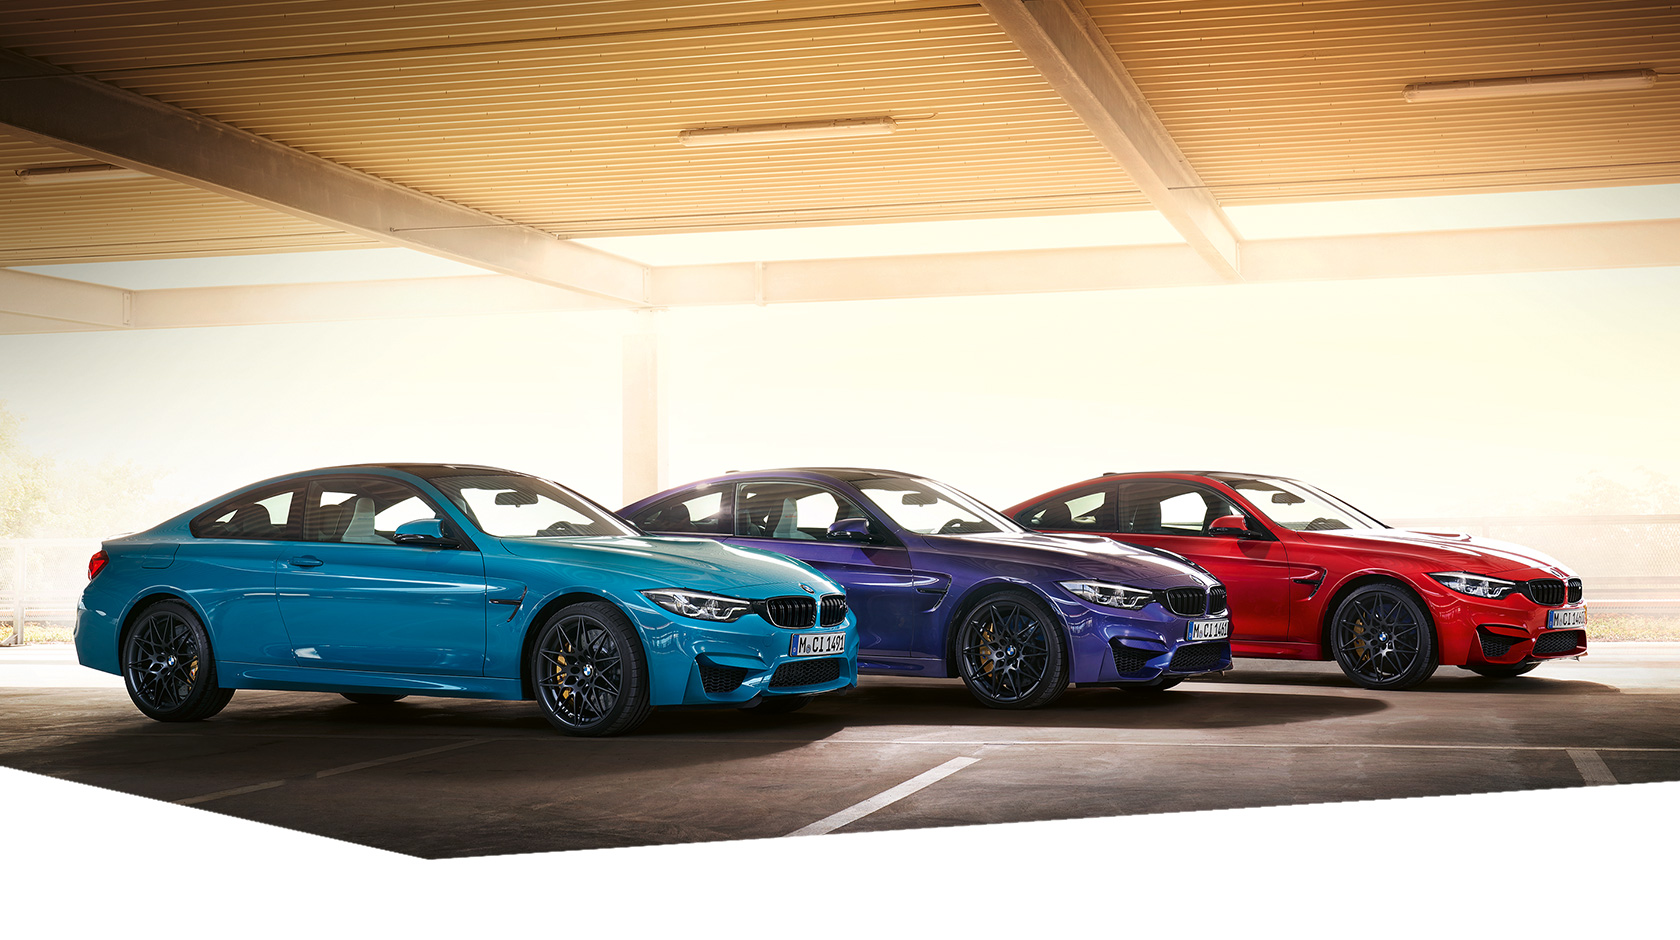 The Bmw M4 Edition M Heritage